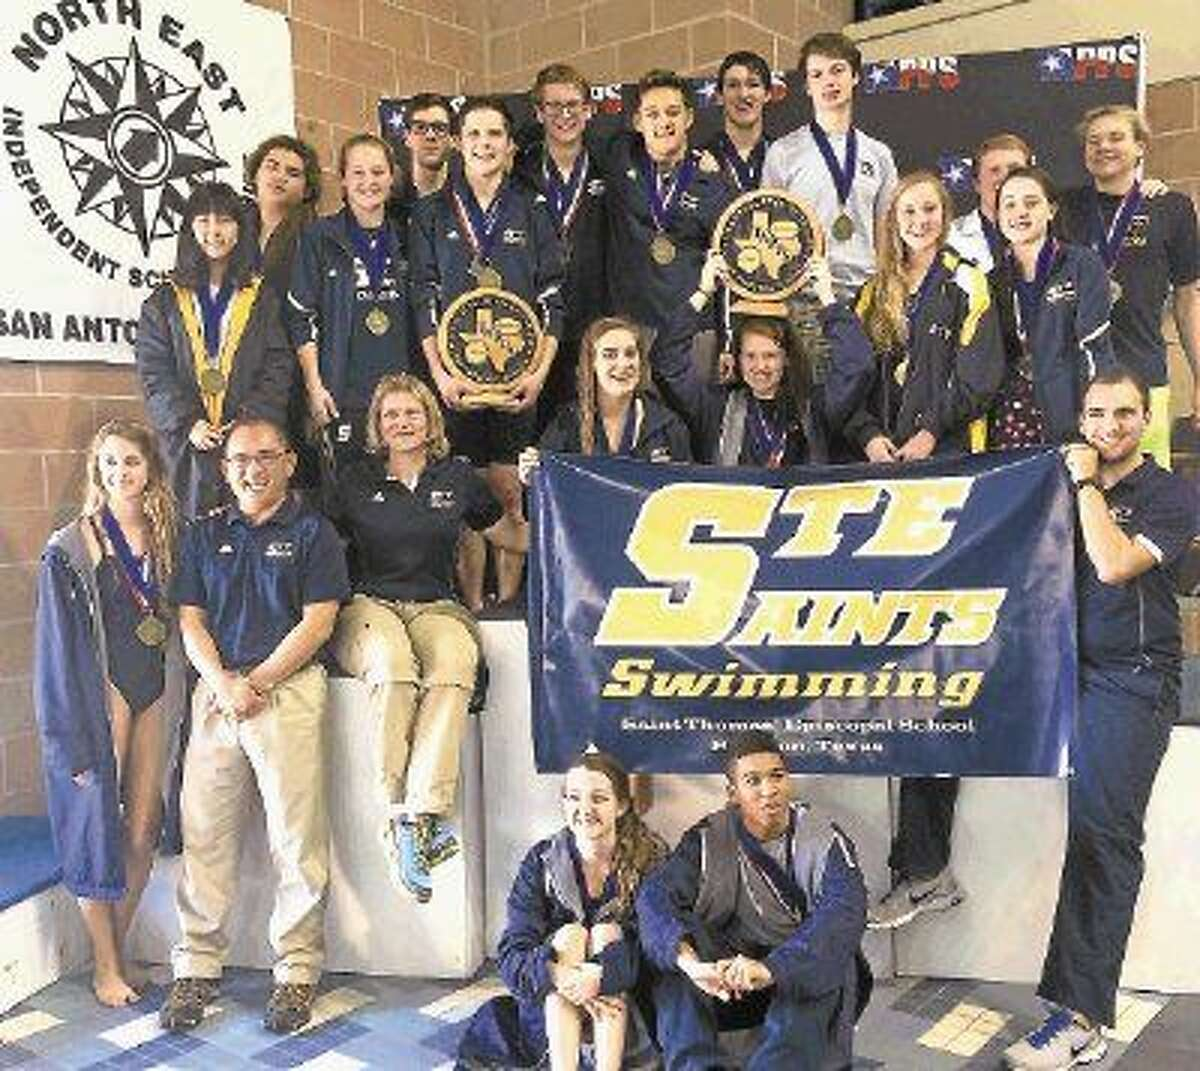 Both the St. Thomas Episcopal boys and girls swim teams won TAPPS 3A state championships in February to cap off a terrific season for both teams.